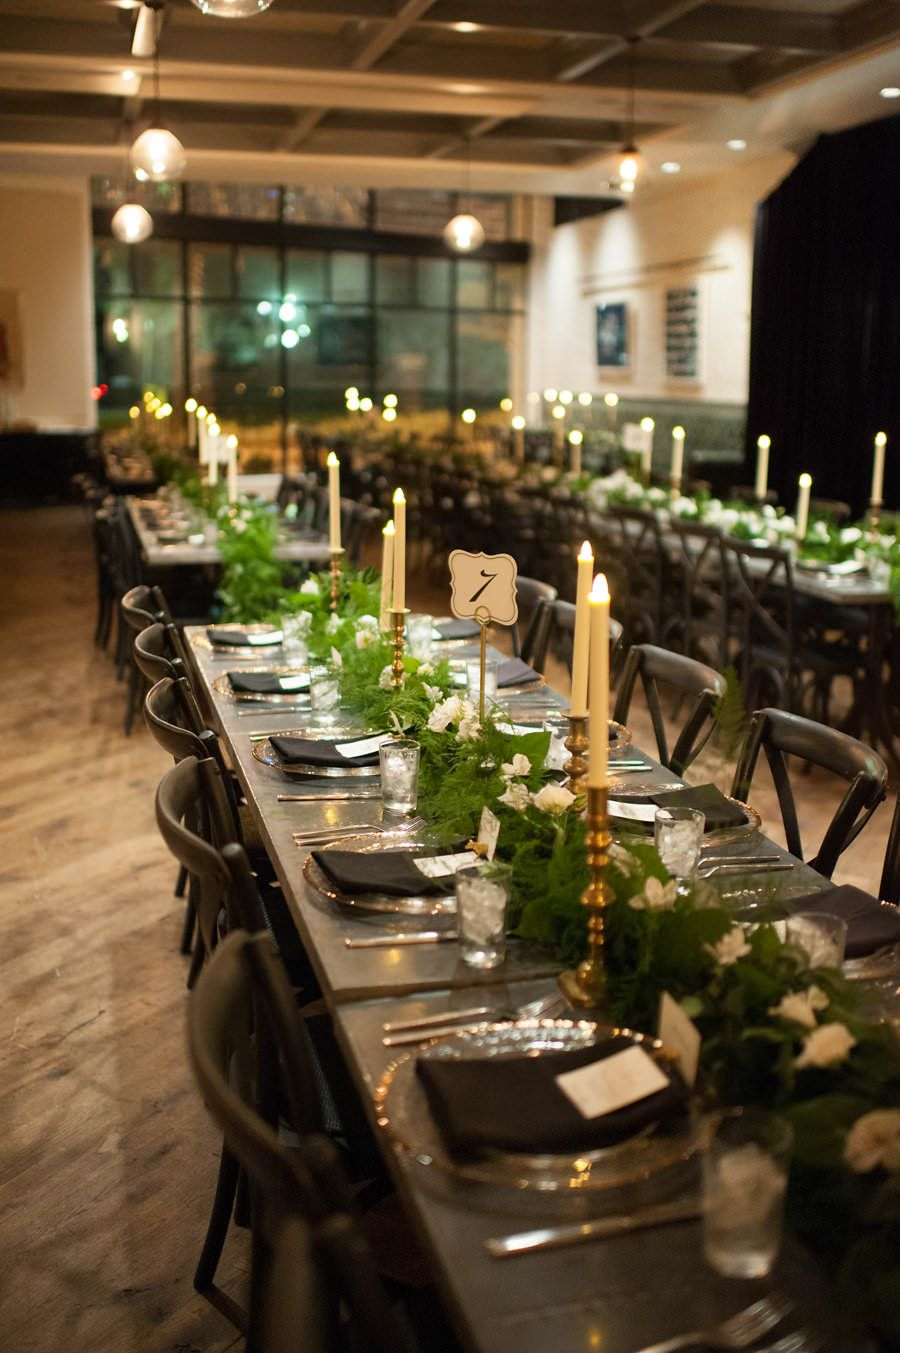 Elegant black ivory and champagne south tampa wedding mmtb long feasting tables with candlelight and elegantboho garland table runnerscenterpieces and wooden church chairs tampa wedding venue the oxford exchange junglespirit Choice Image